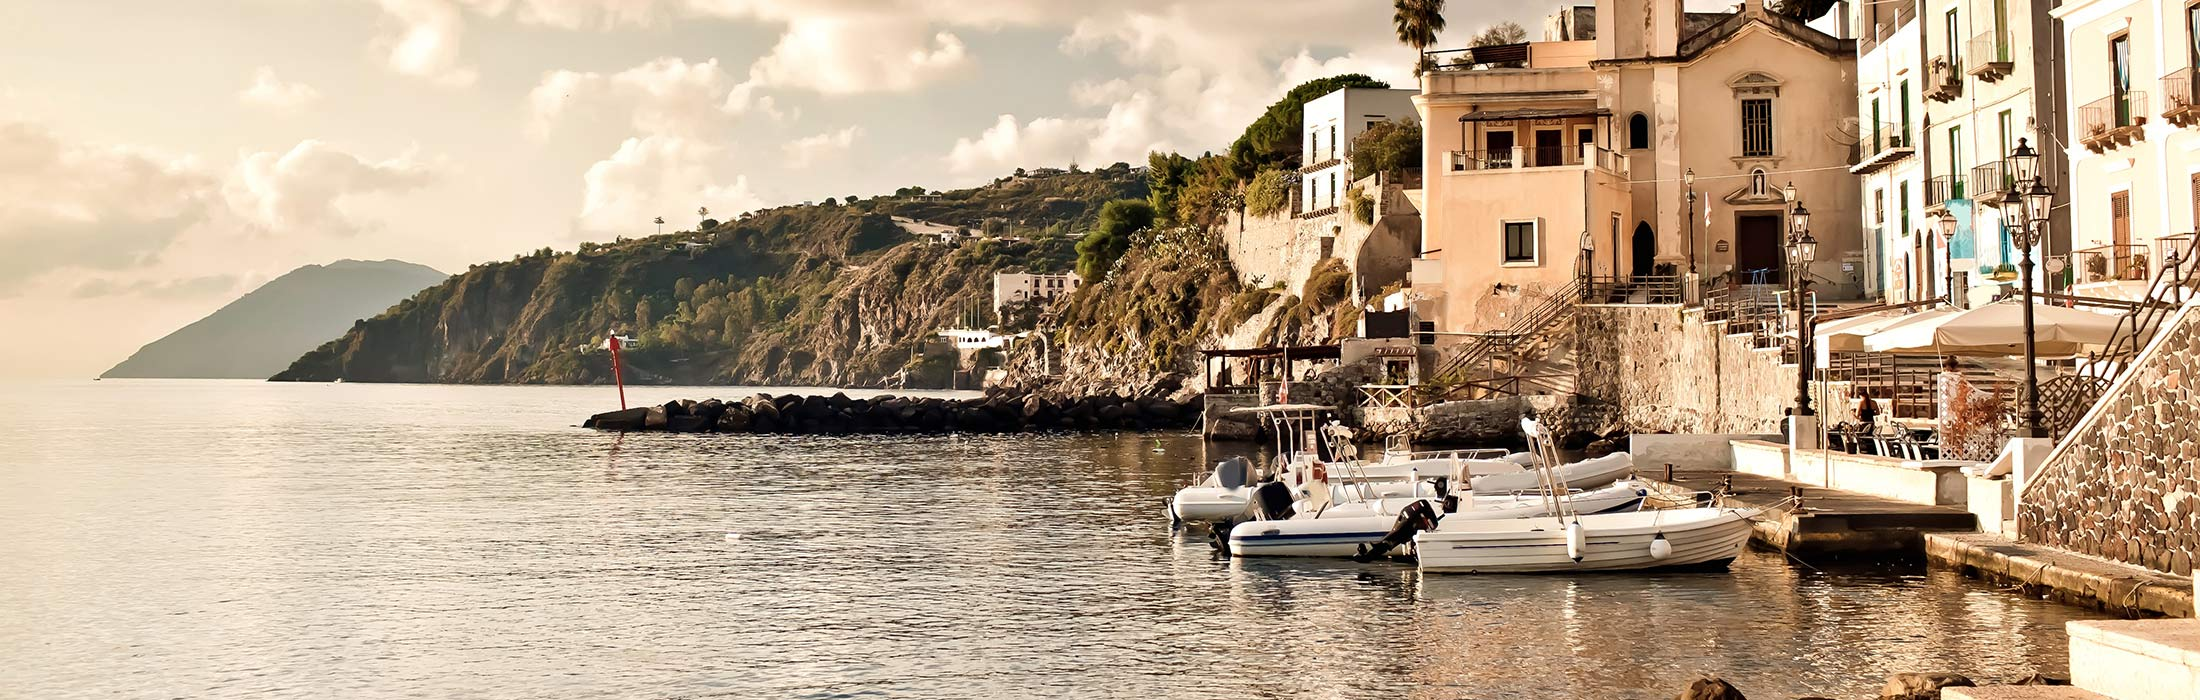 top yacht charter destinations mediterranean sicily and lipari islands lipari and the other aeolian islands main slider 2